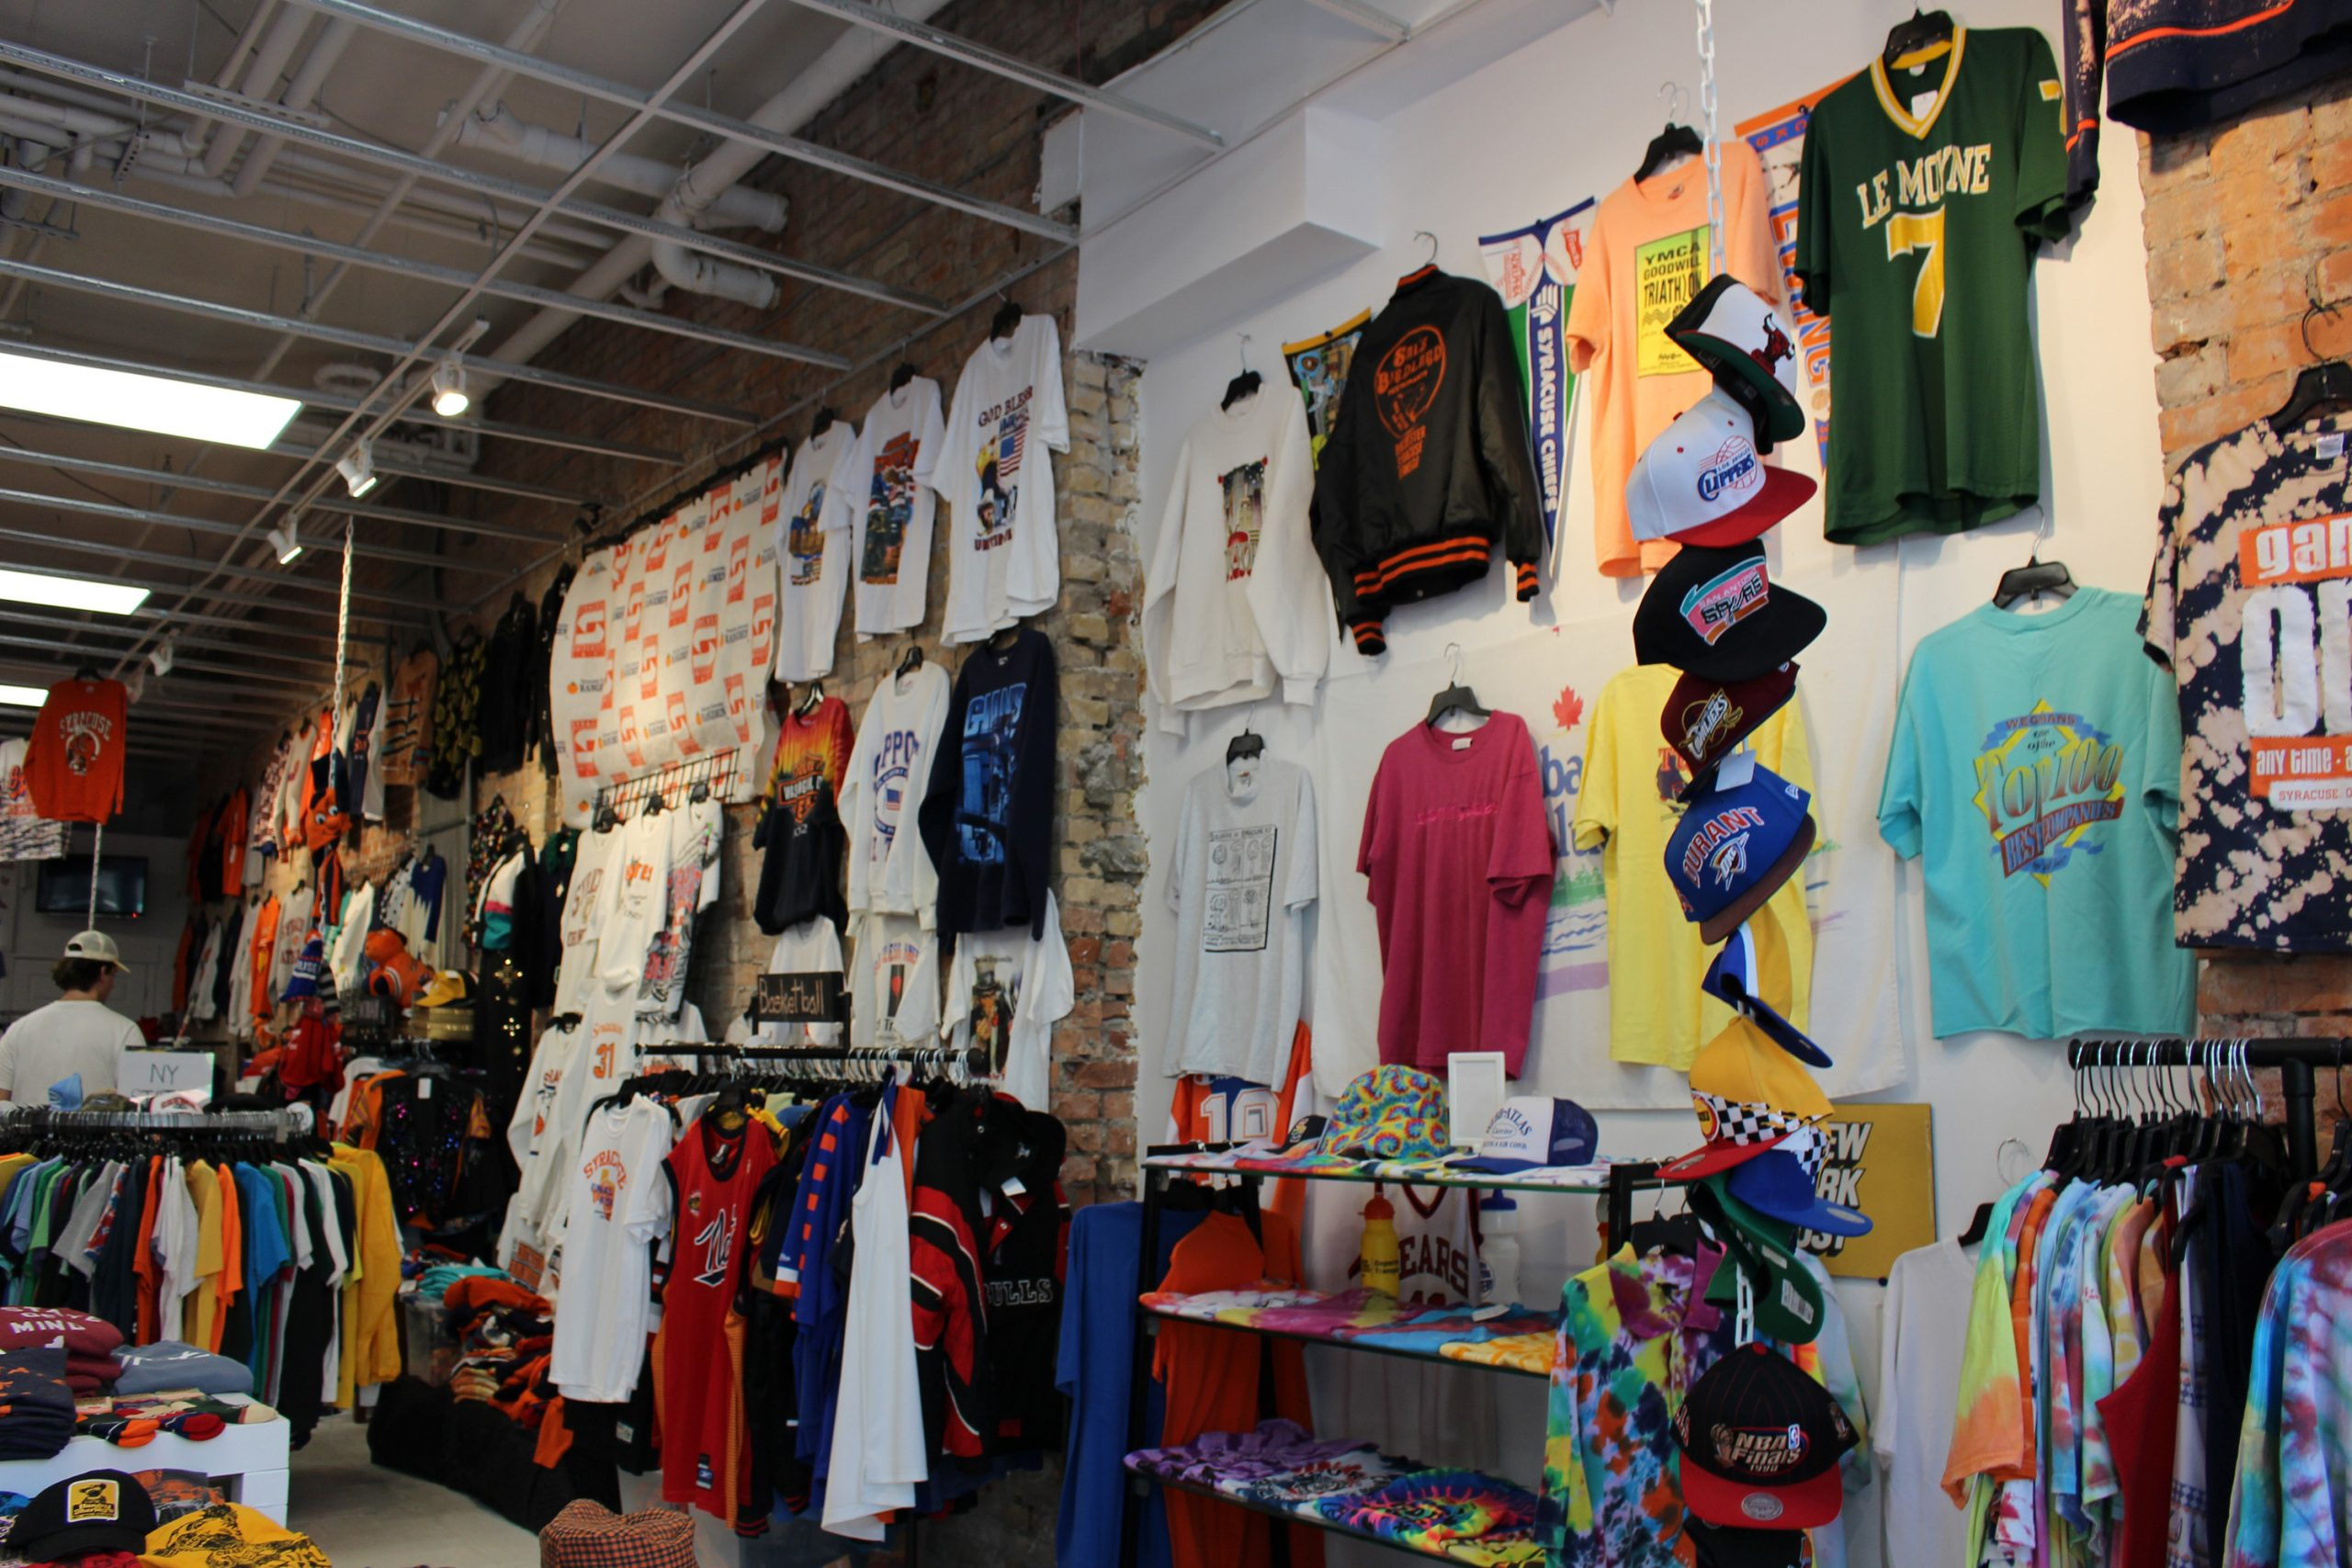 The interior of Scholars & Champs in Syracuse, NY